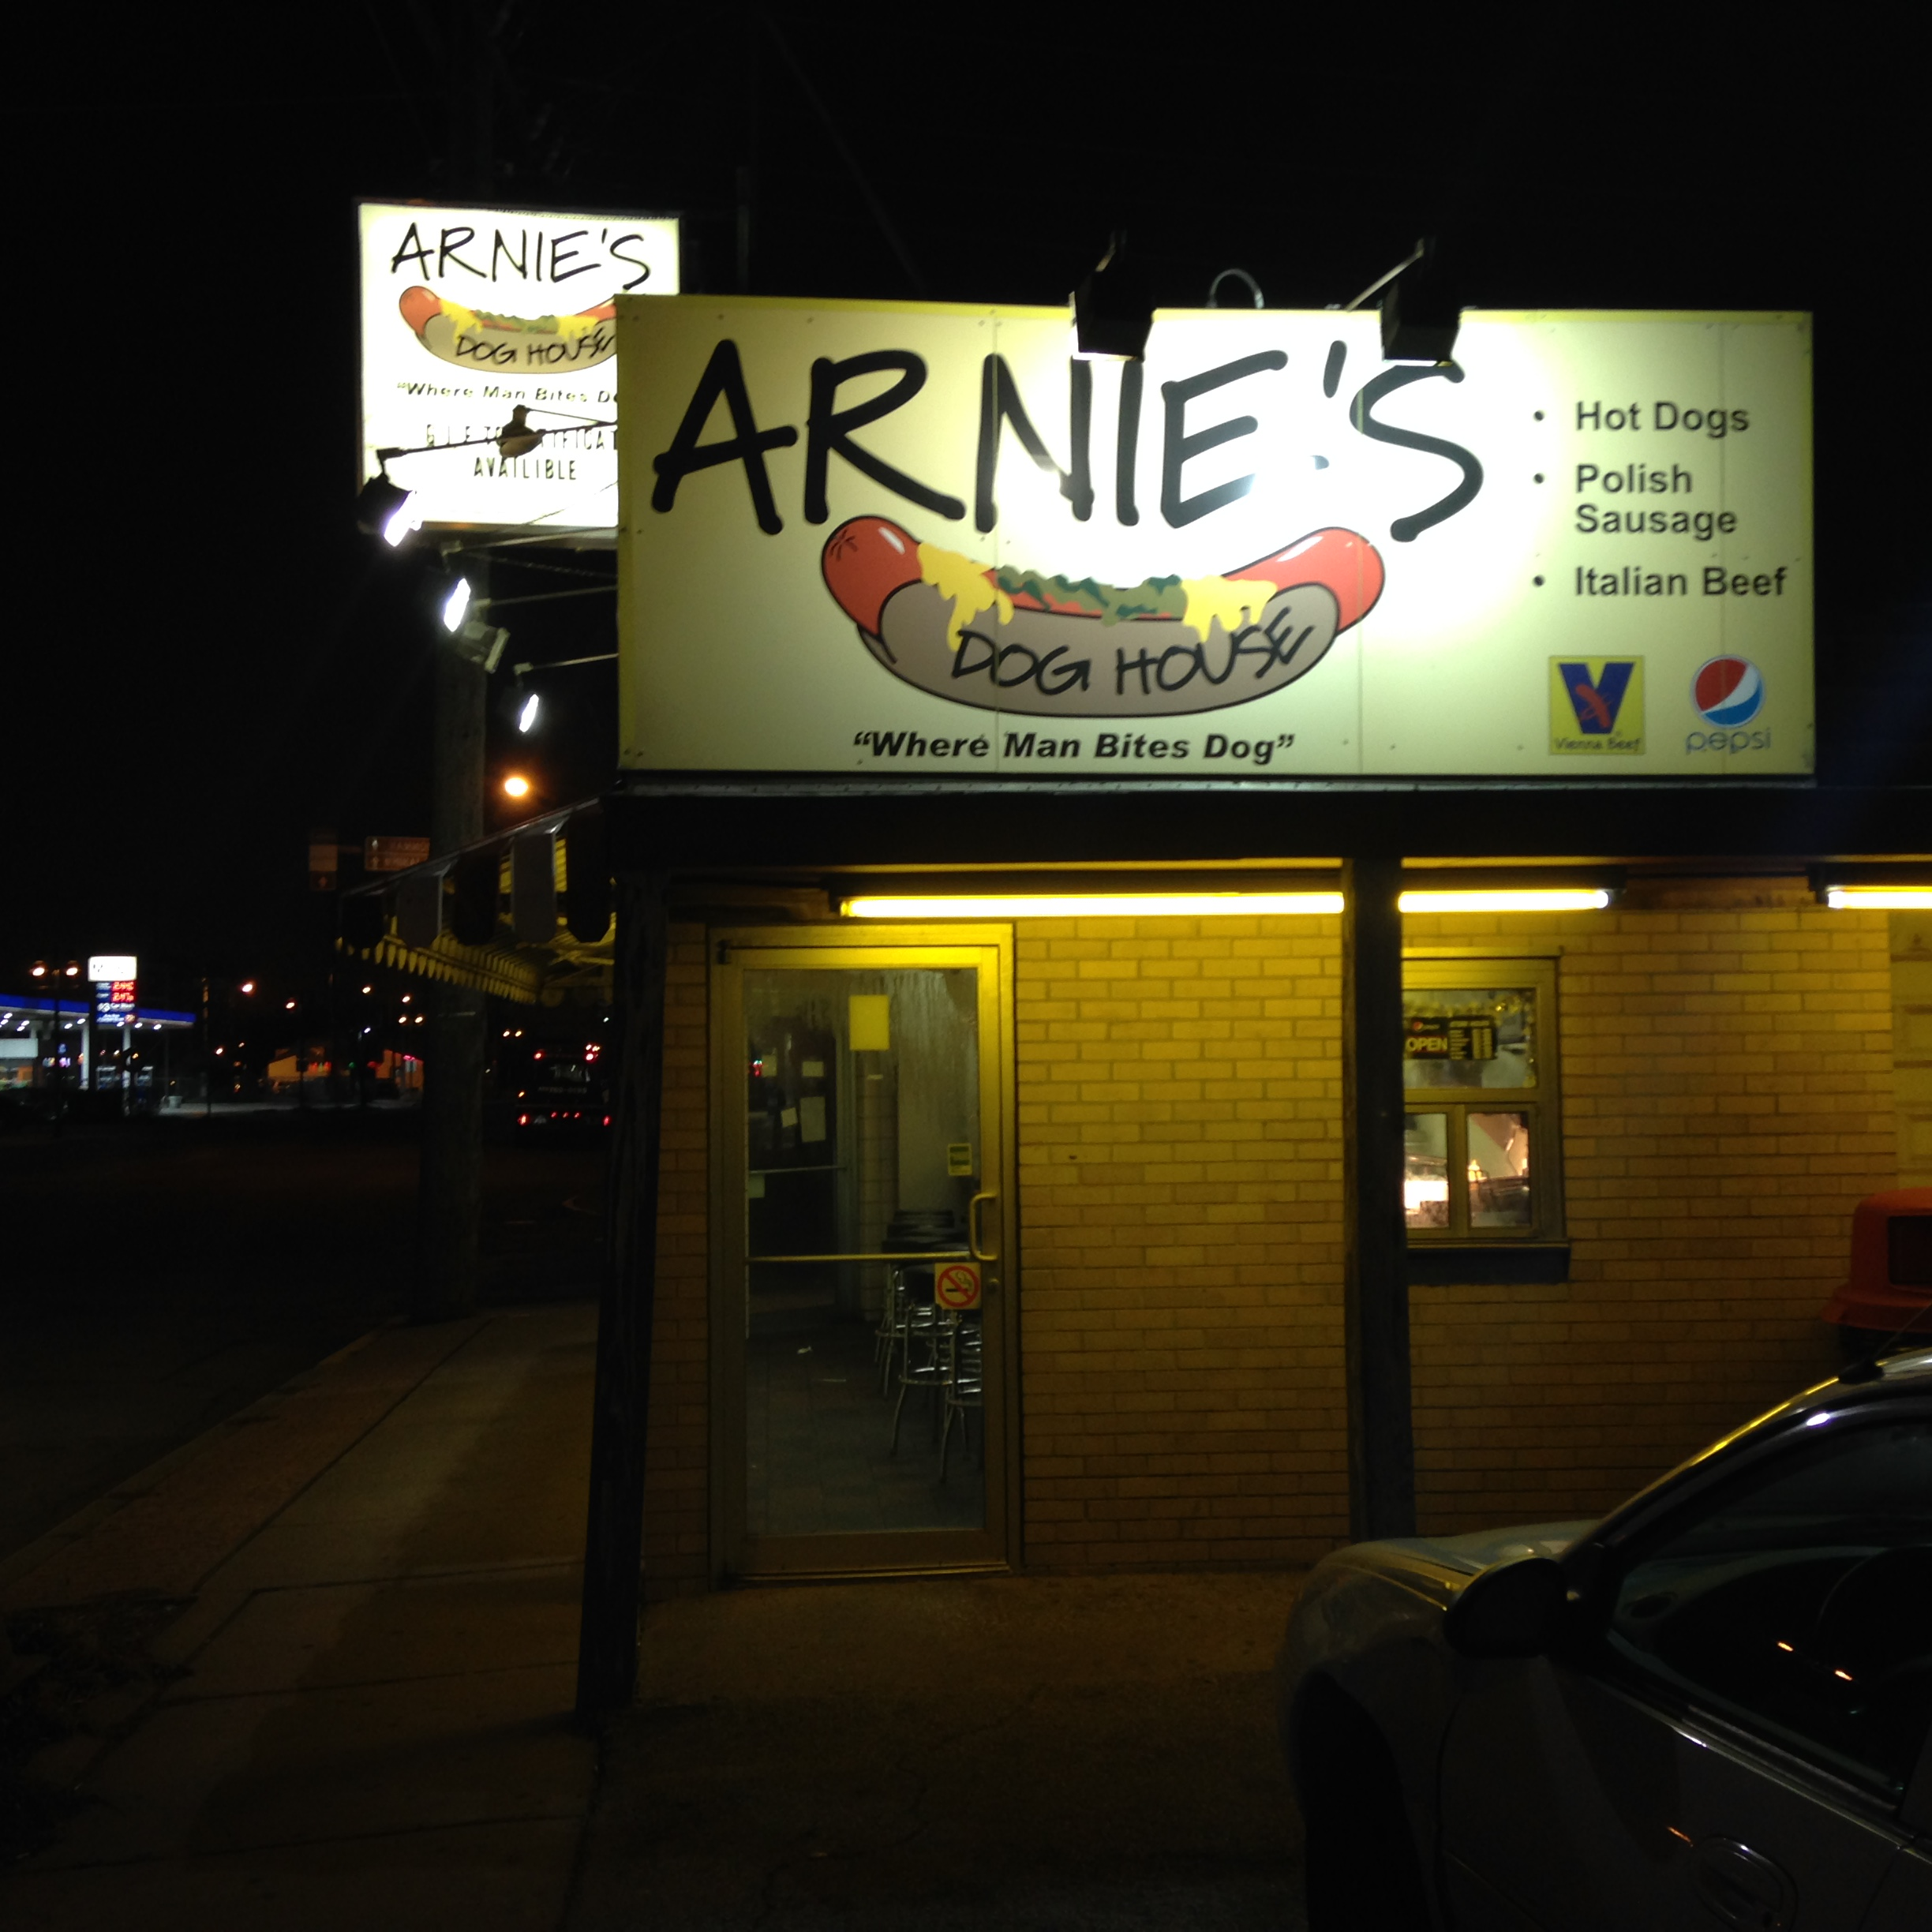 Arnie's Dog House Exterior - Whiting, Indiana - December 2014